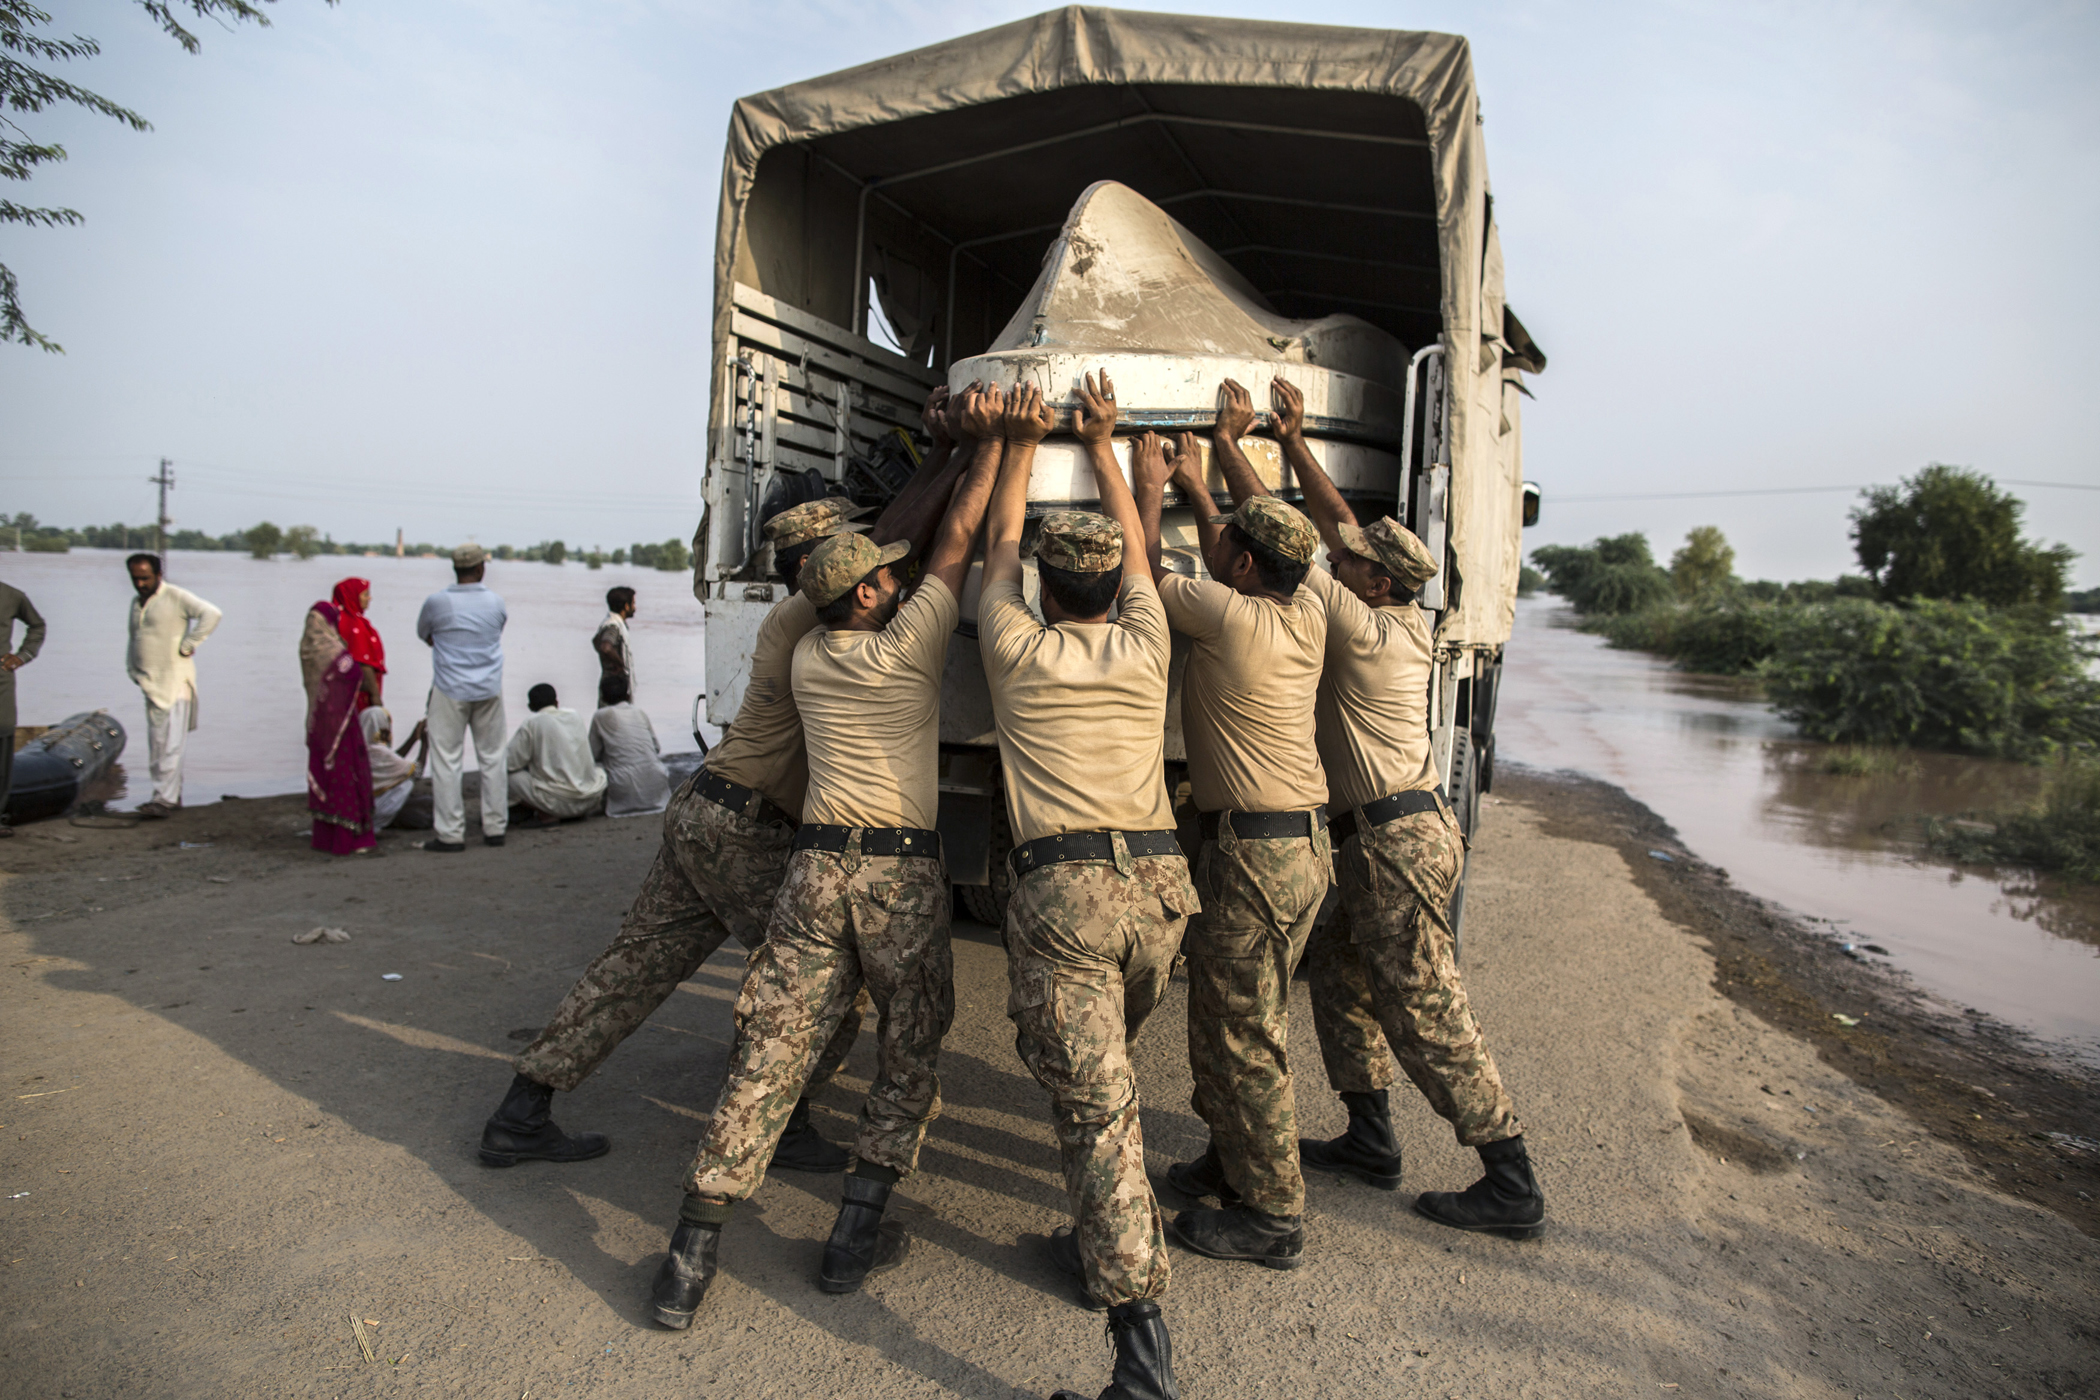 Army soldiers unload boats to be used for evacuating flood victims from their flooded houses following heavy rain in Jhang, Punjab province, Pakistan, Sept. 10, 2014.